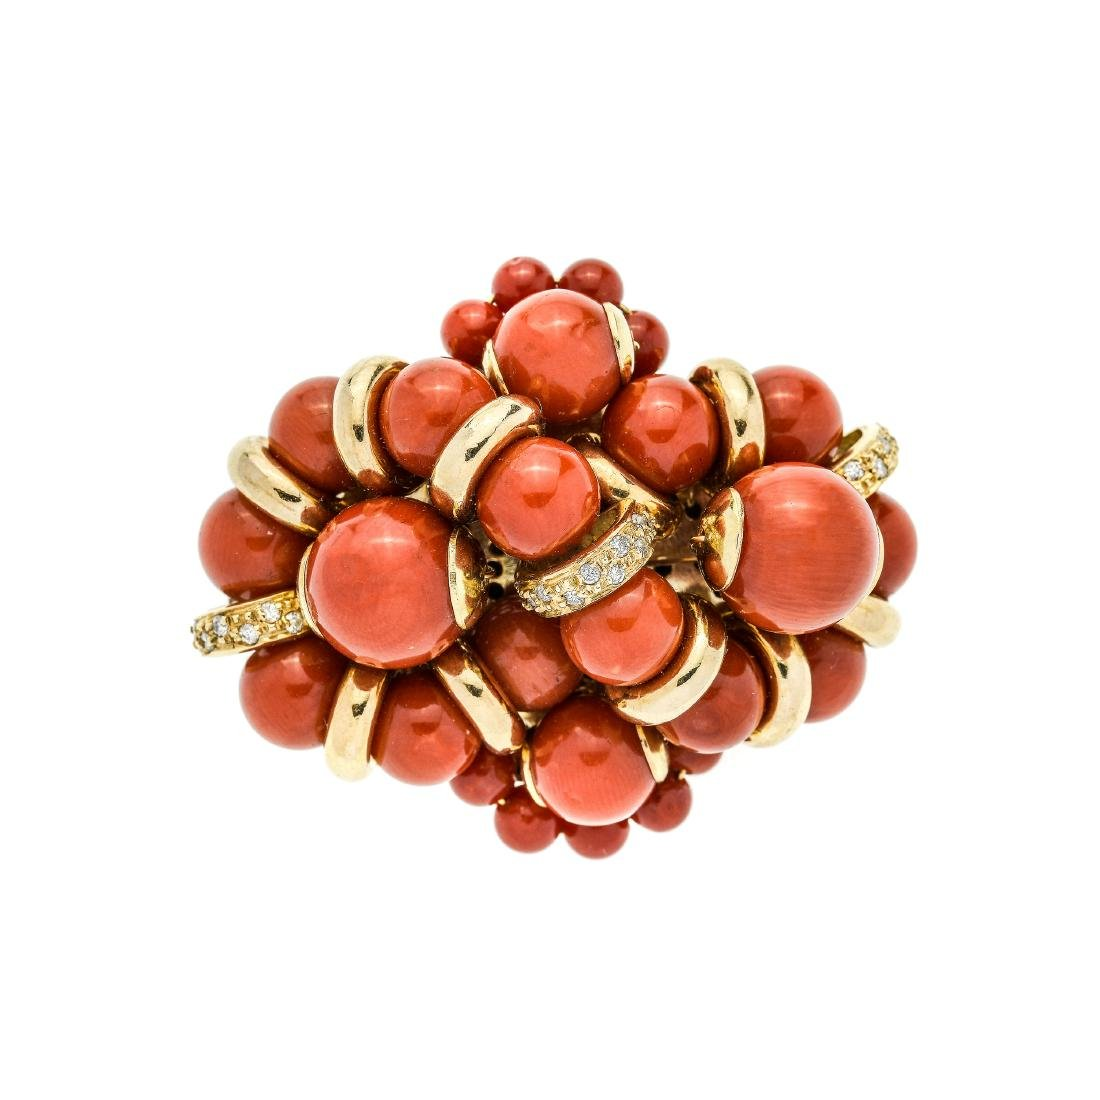 Brooch in yellow gold, diamonds and red coral